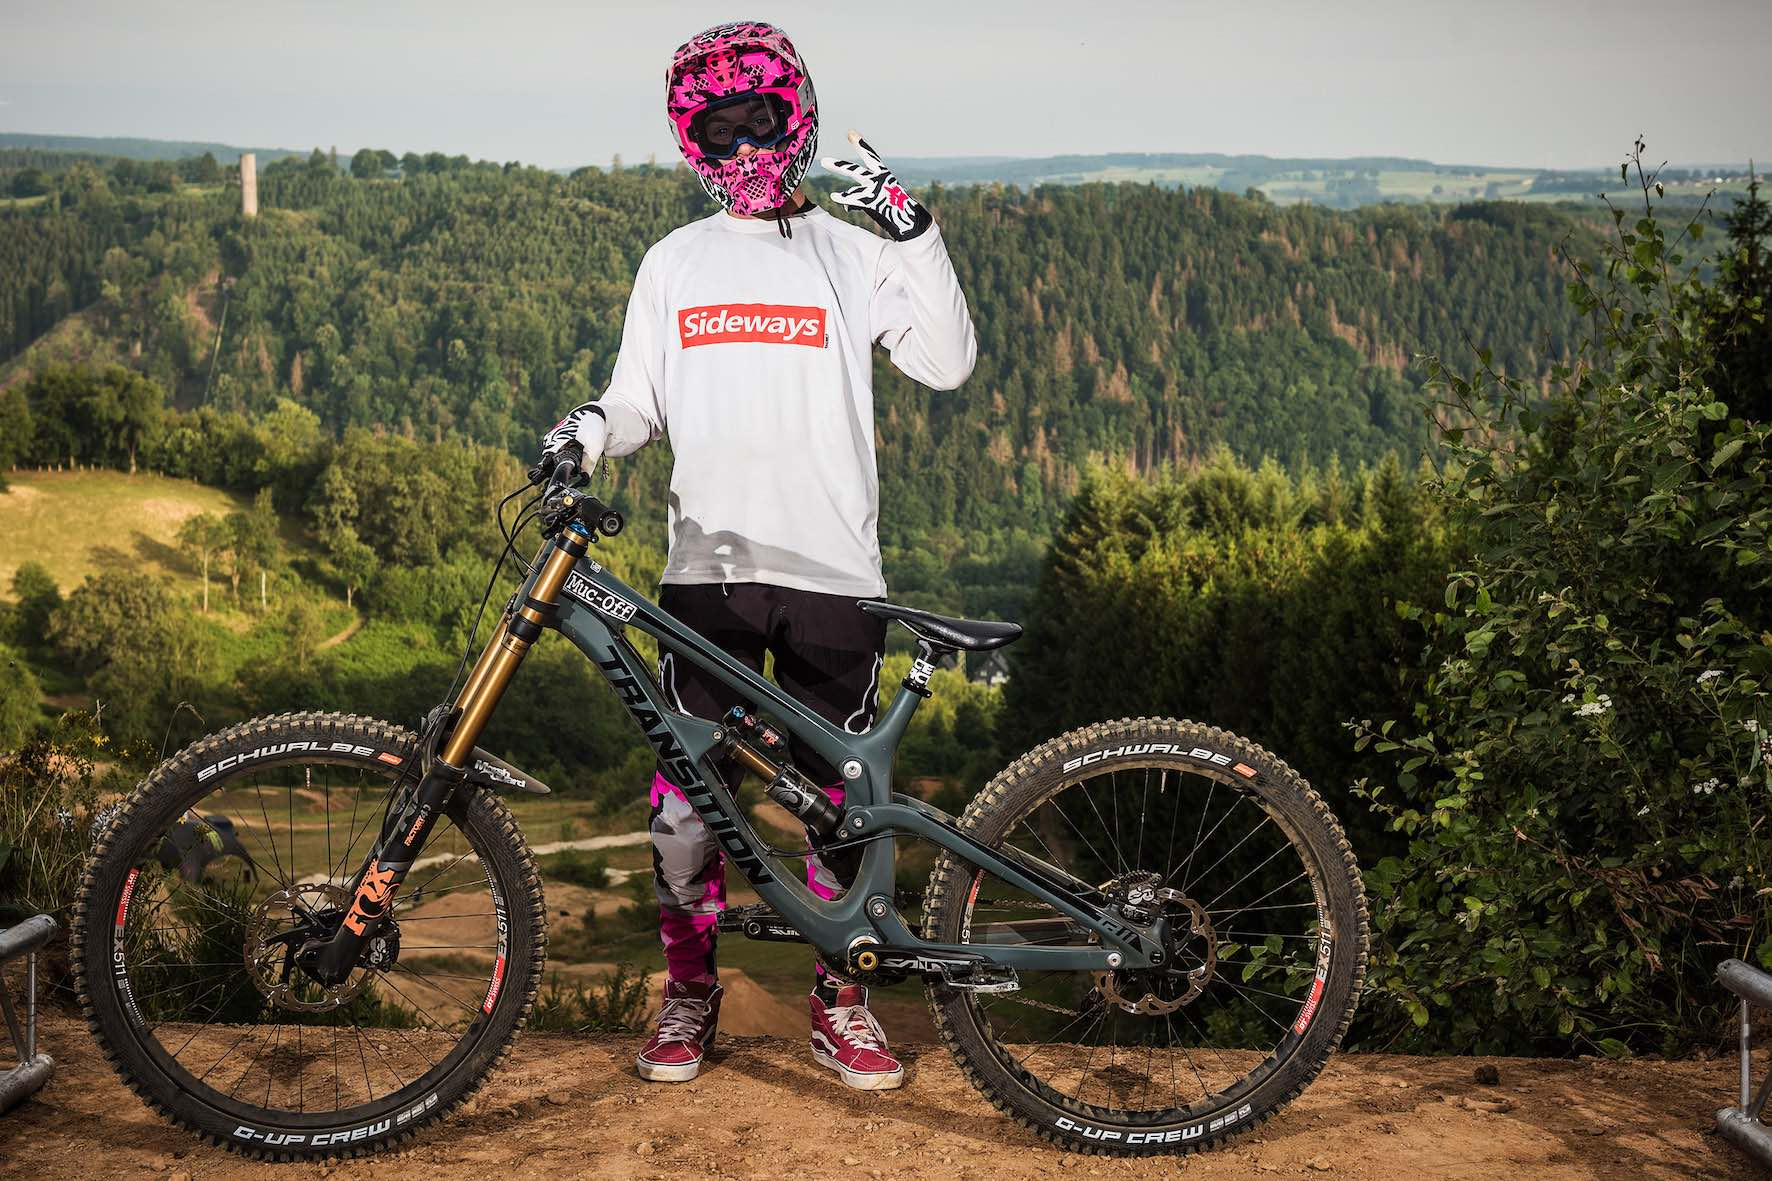 Bikes of Loosefest XL 2019 - Kaos Seagrave on Transition